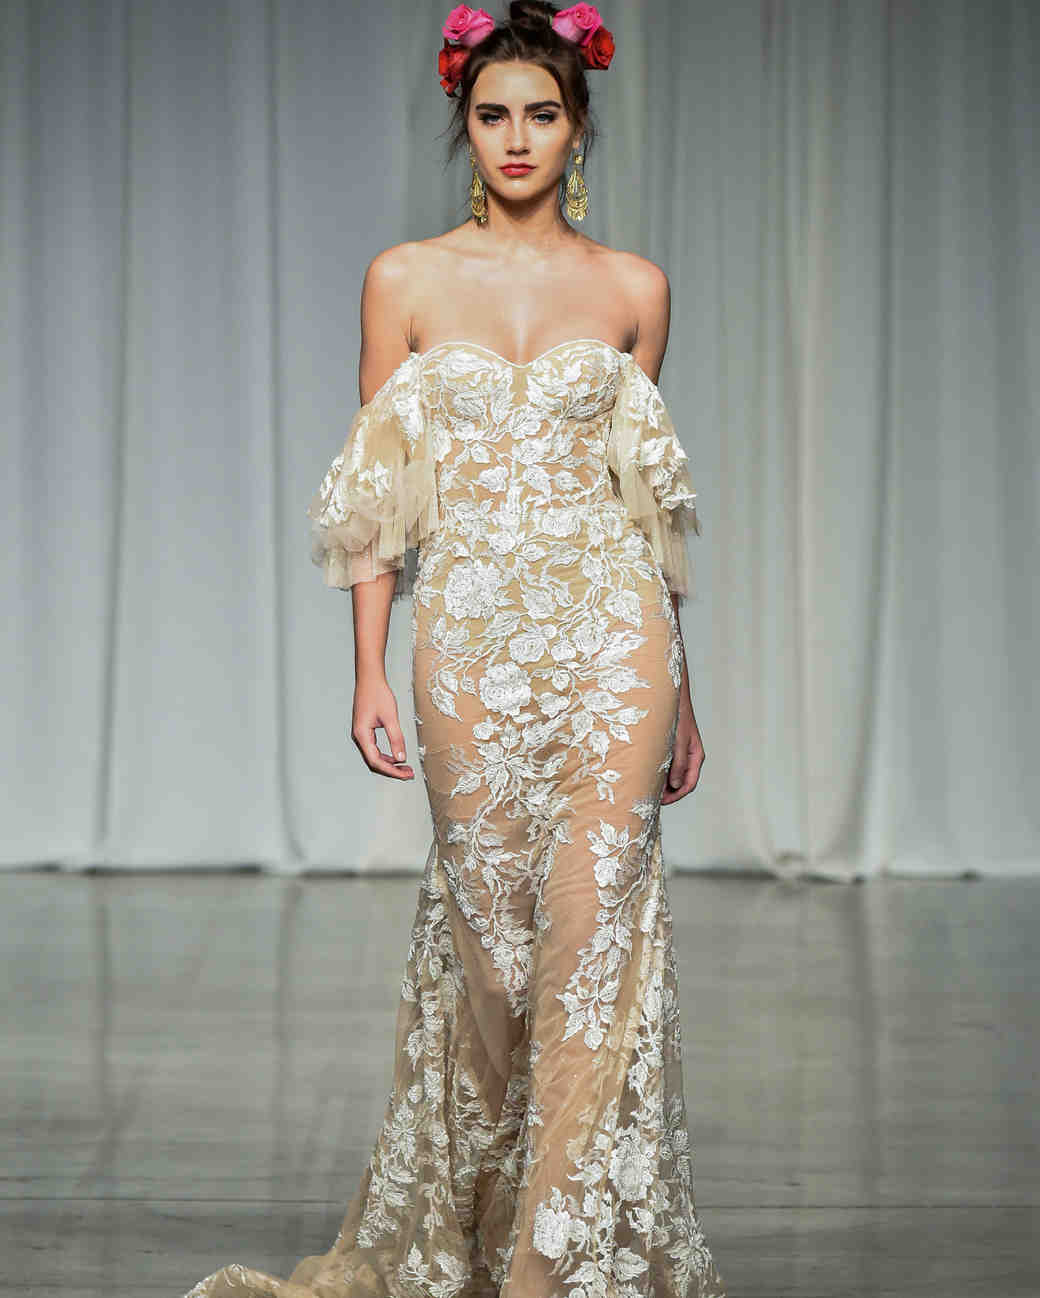 julie vino group fall 2019 sheer over the shoulder wedding dress